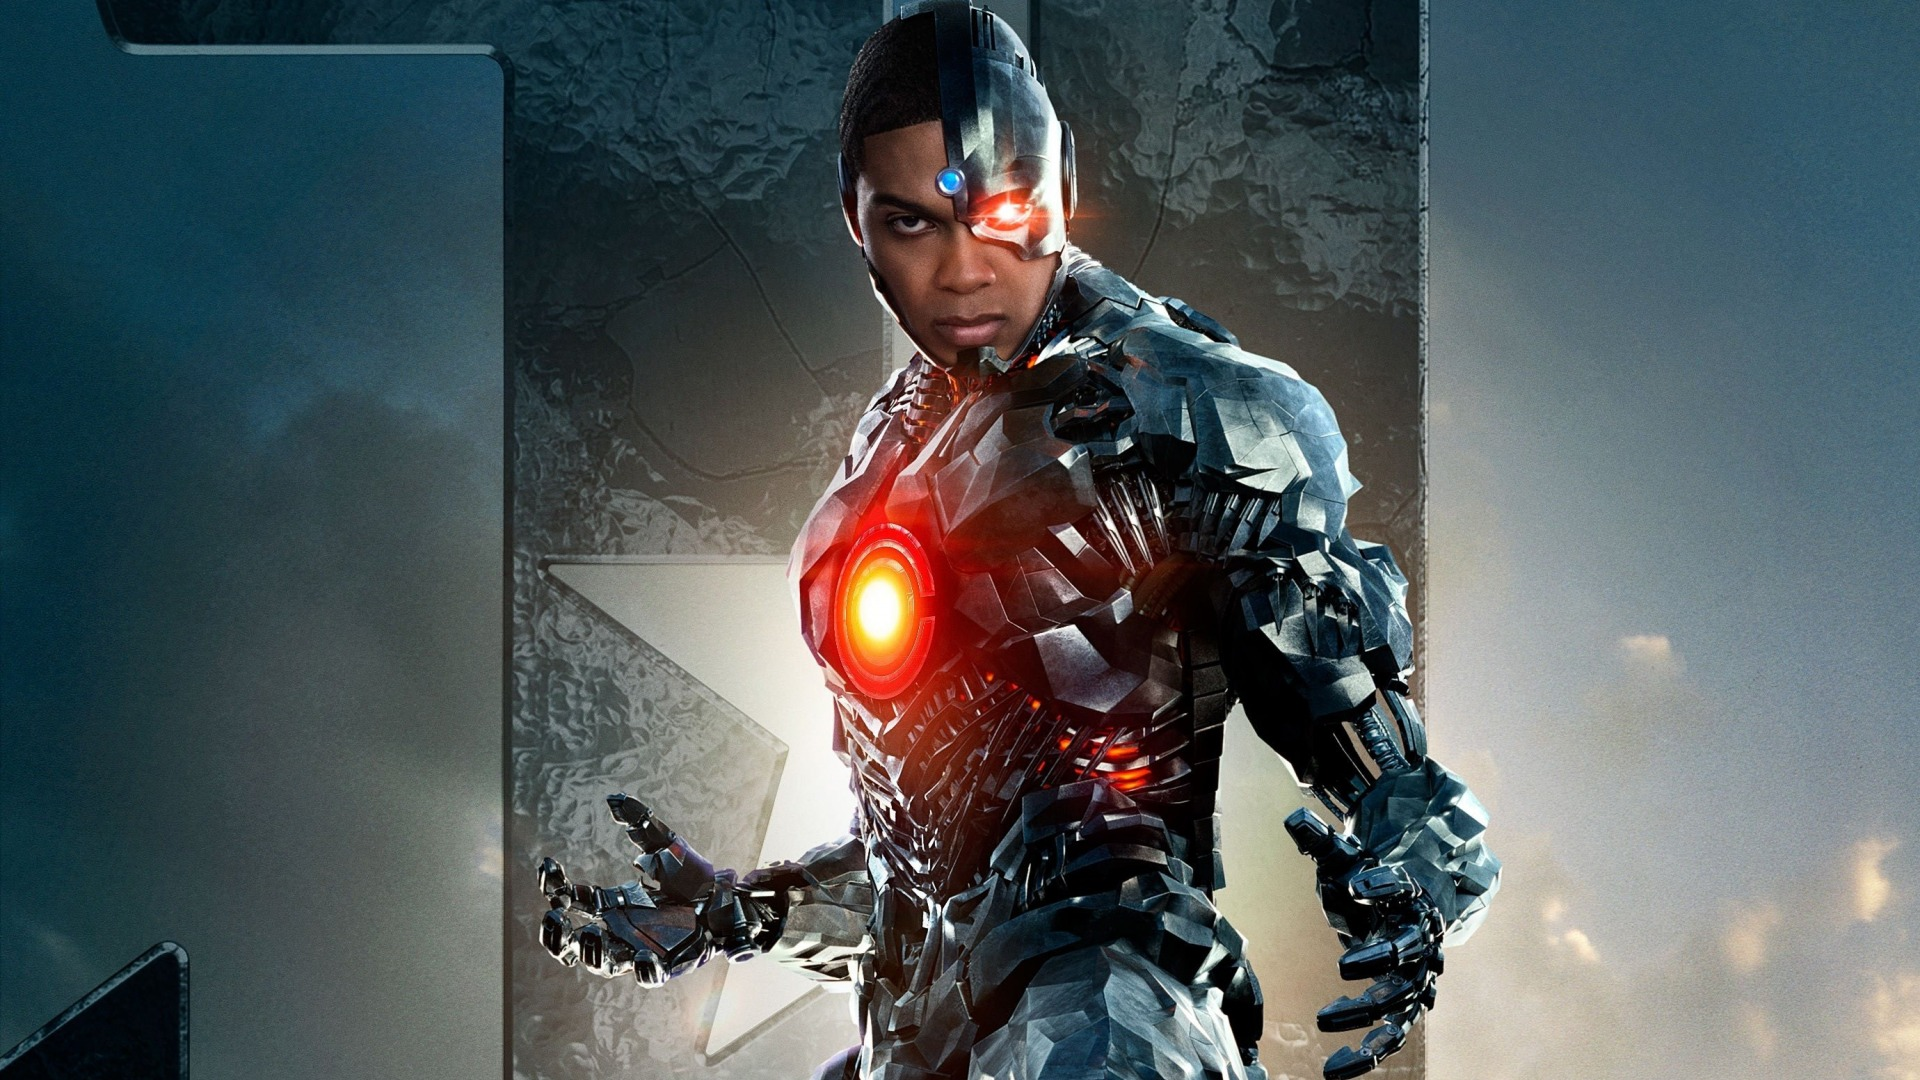 cinema, film, Ray Fisher, Cyborg, movie